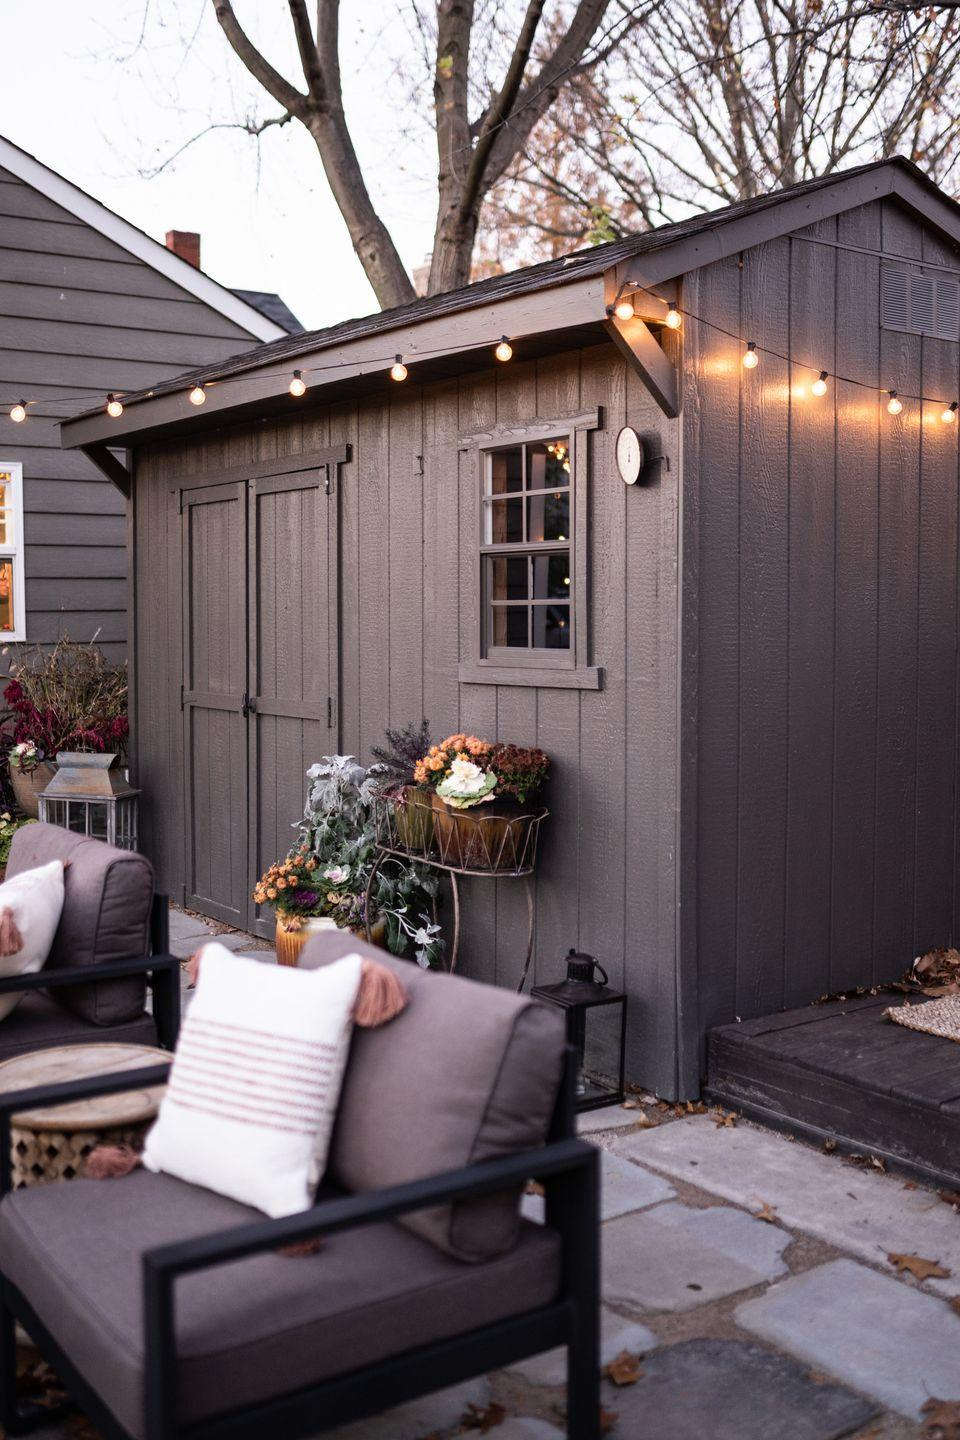 """<p>For paint, dark colors have been trending on exteriors, Wadden says. They can look good no matter the season. """"Our 2021 Color of the Year, Urbane Bronze SW 7048, will look just as beautiful on a snowy day in January as it will in our outdoor offices this summer,"""" she says. </p><p>If you're feeling bold and want help focusing, go for a red. Wadden suggests Sherwin Williams's top-selling Red Barn or Rustic Red. To bring in an element of fun, you could even """"use multiple colors to create a beautiful mural,"""" she suggests.</p>"""